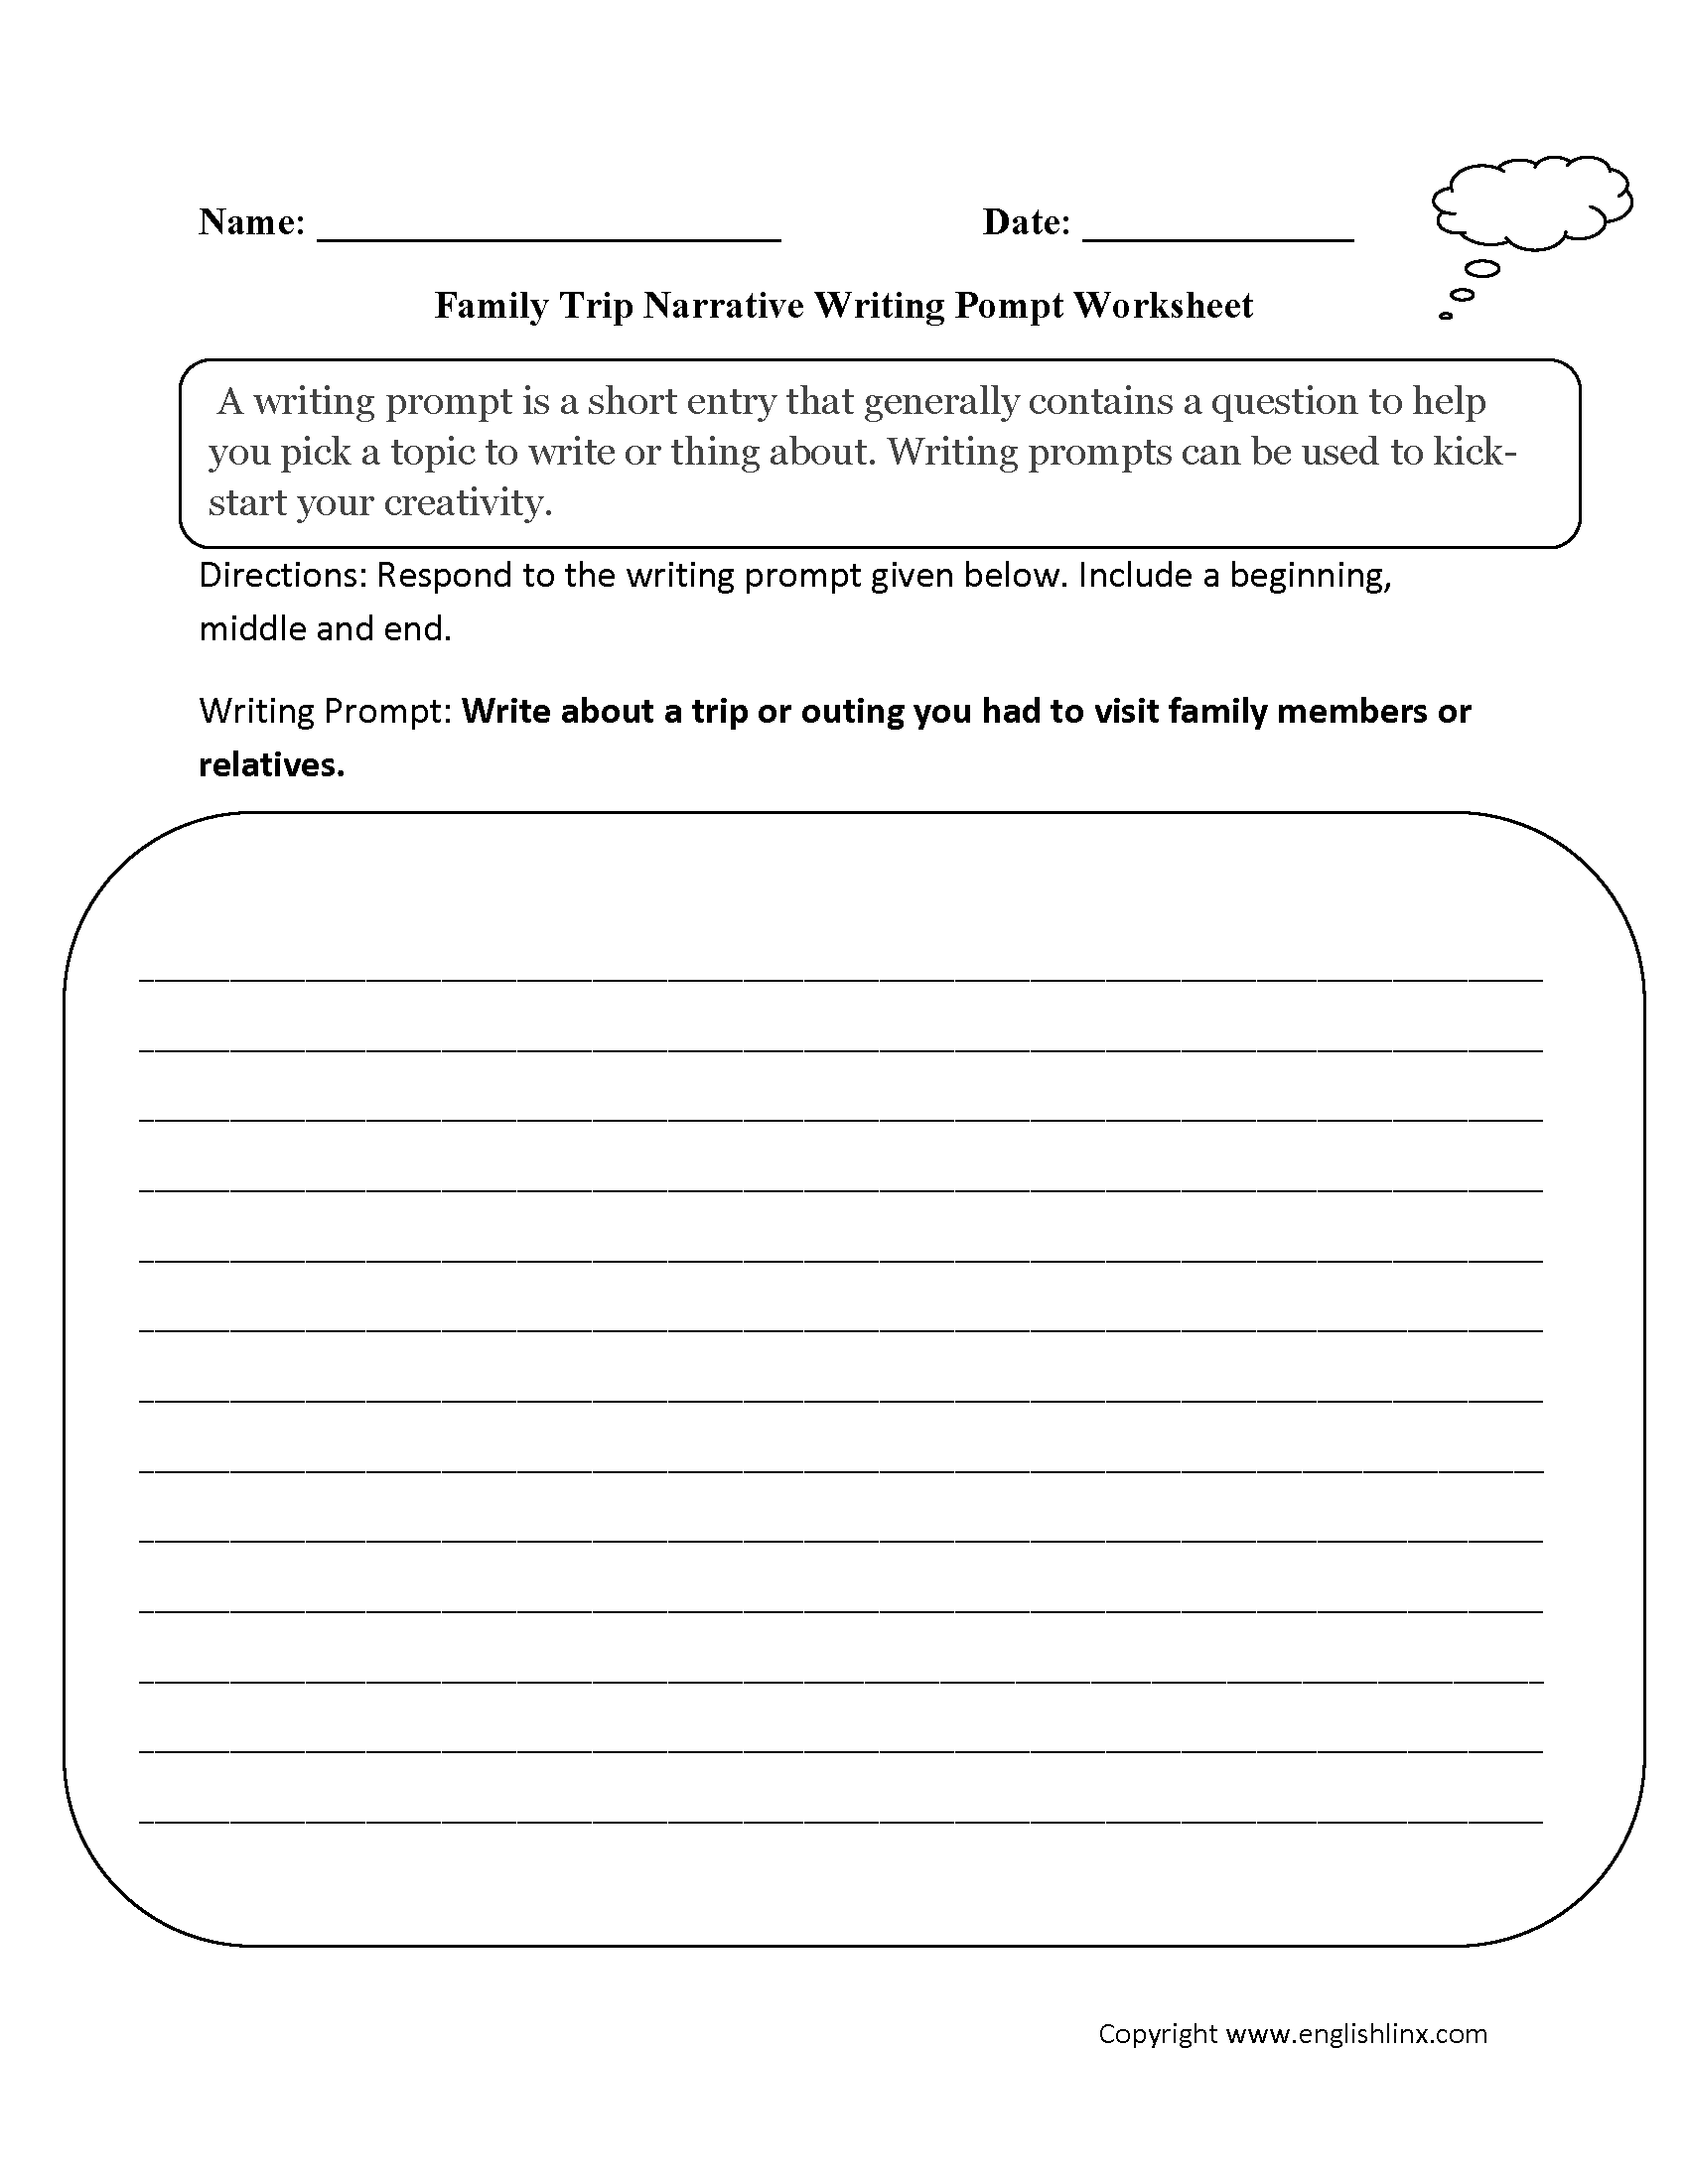 Worksheets 2nd Grade Writing Worksheets Free Printable englishlinx com writing prompts worksheets worksheets